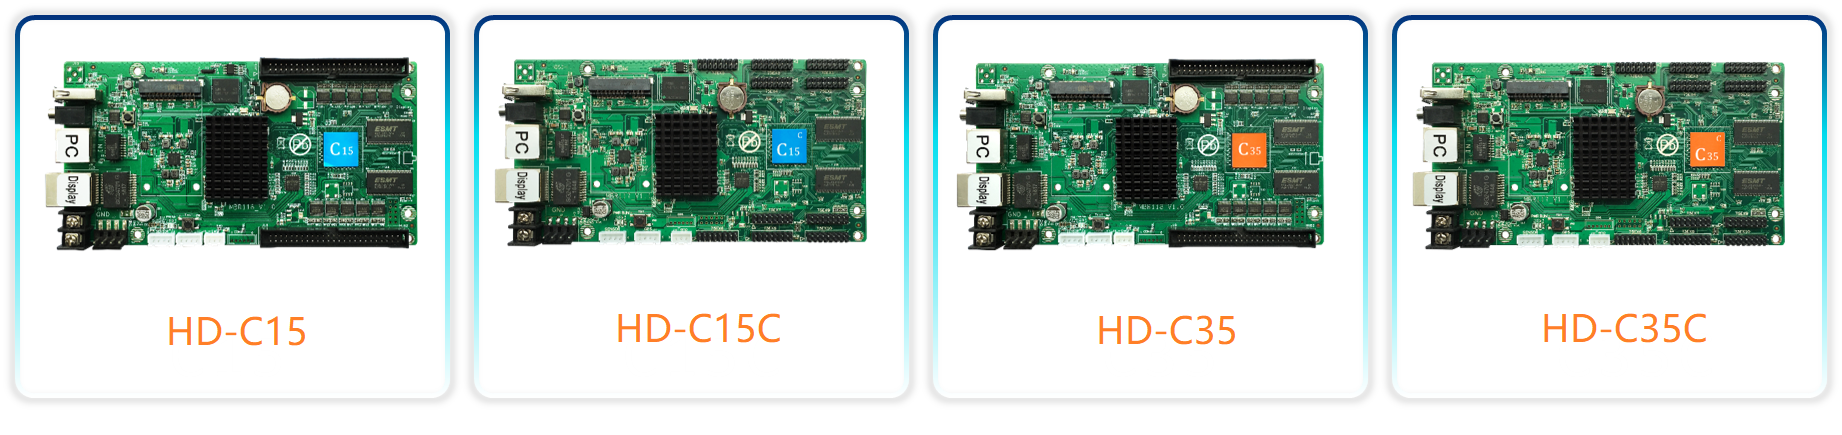 Huidu HD-C15 C15C HD-C35 Asynchronous Indoor & Outdoor LED Video Display Controller Can add 3G/4G/Wifi /Brightness/Temperature